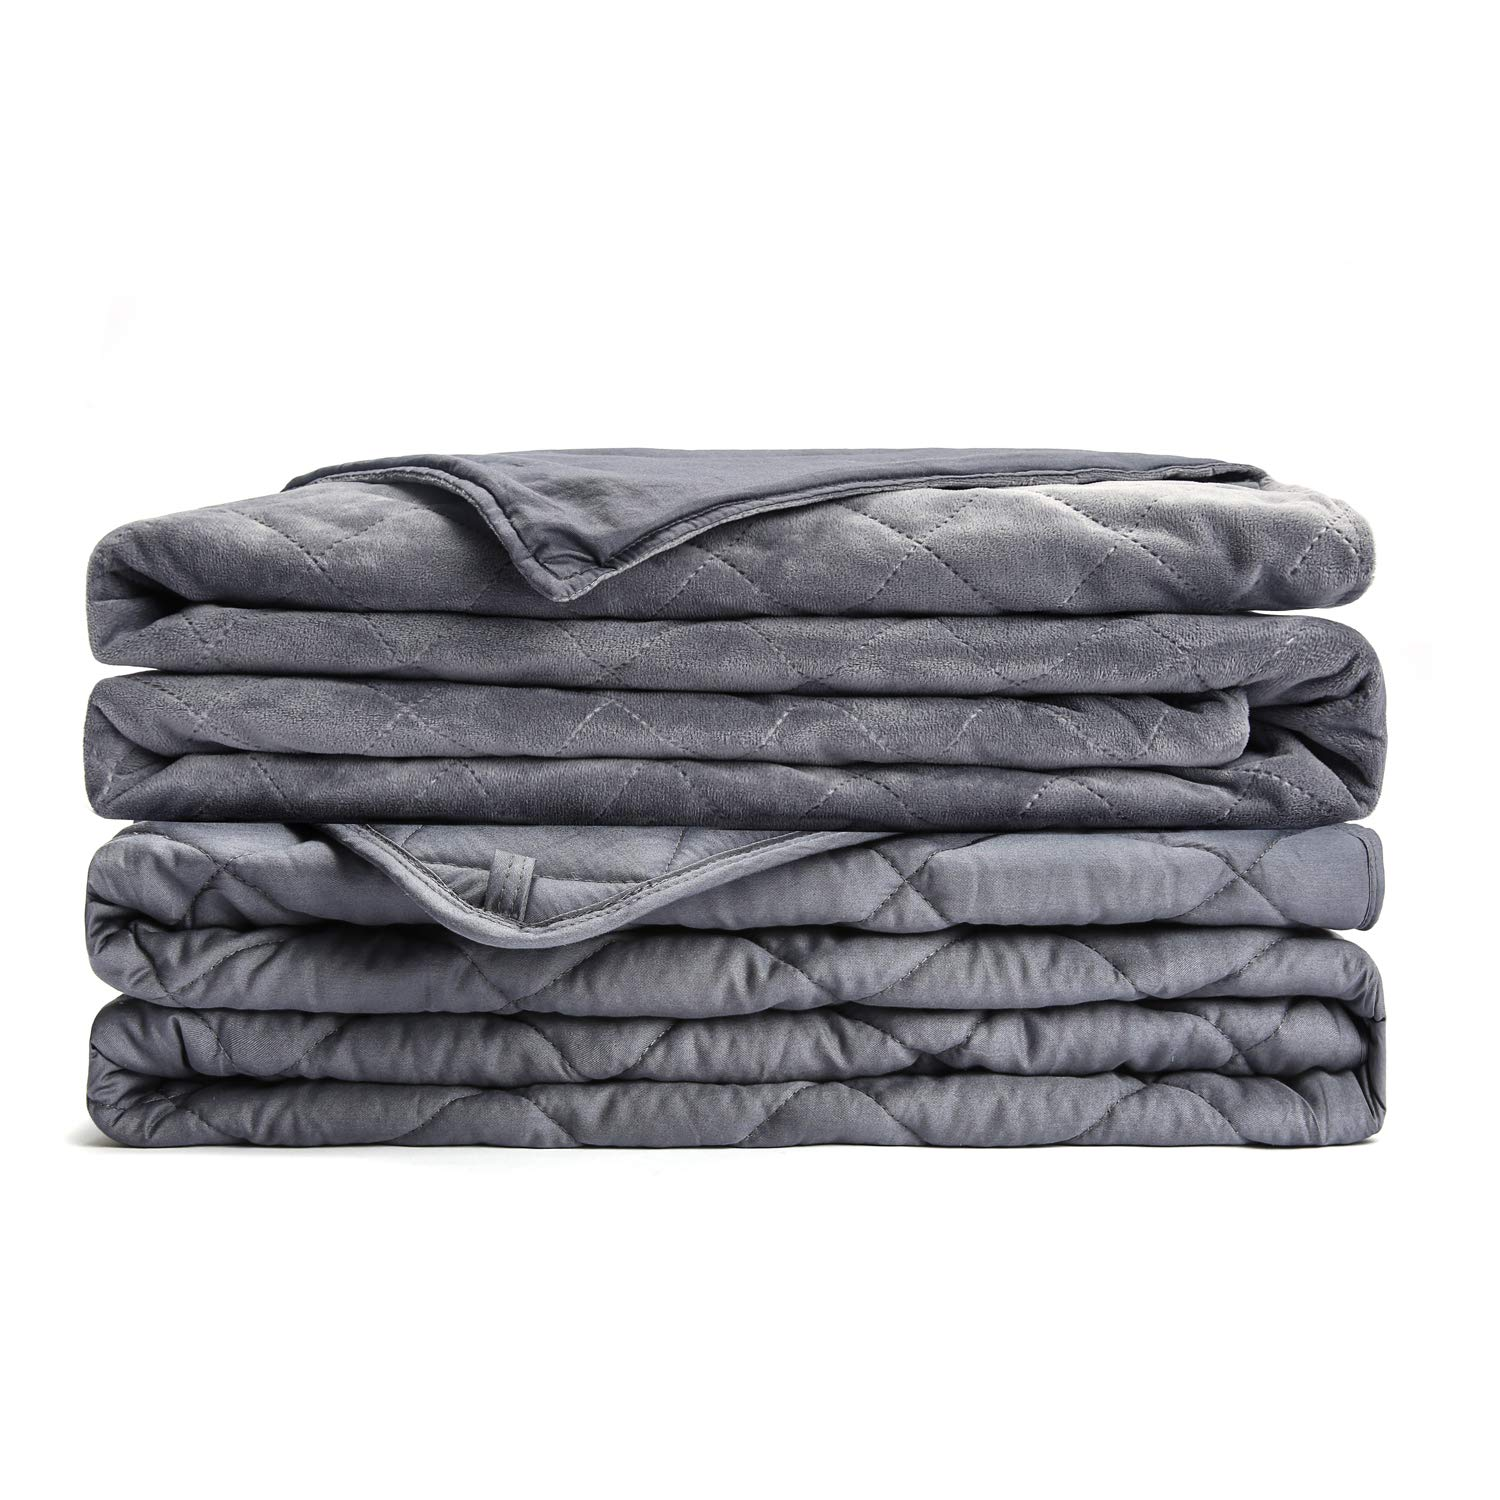 L'AGRATY Weighted Blanket for Adults with Removable Cover (20 lbs, 60x80, Queen Size) | A Luxurious Combination Tranquility Blanket | No Bead Mission, Uniform Distribution. by L'AGRATY